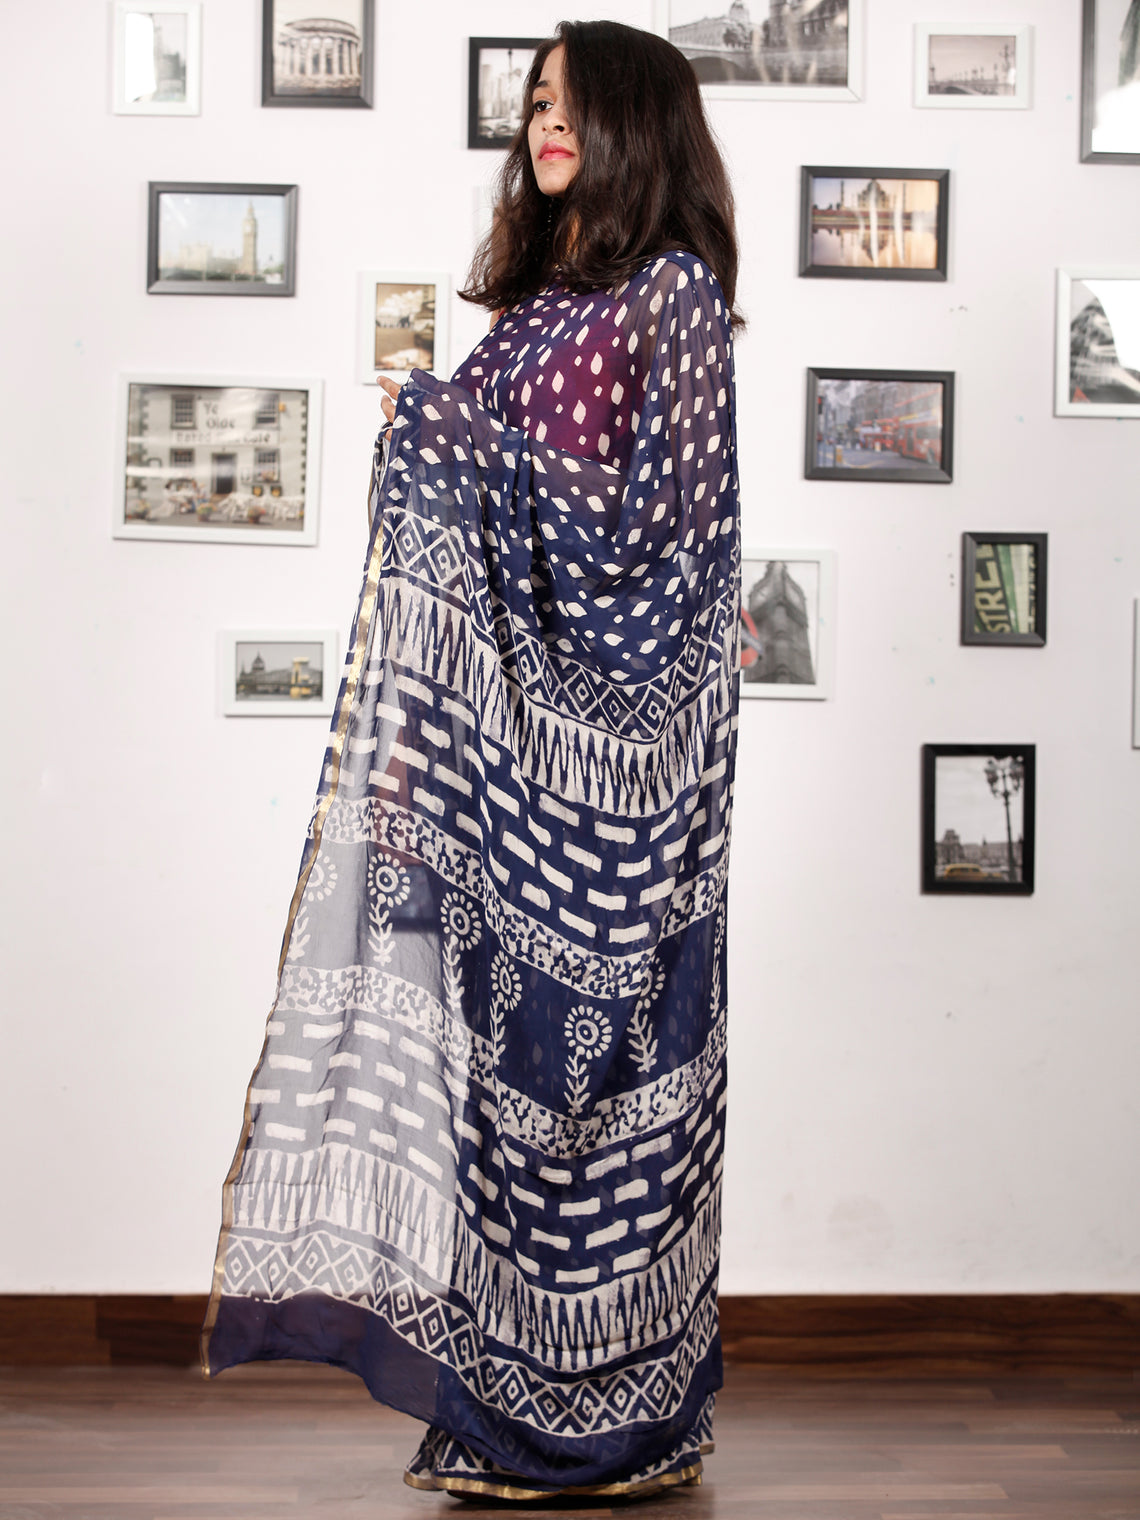 Indigo White Hand Block Printed Chiffon Saree with Zari Border - S031703159